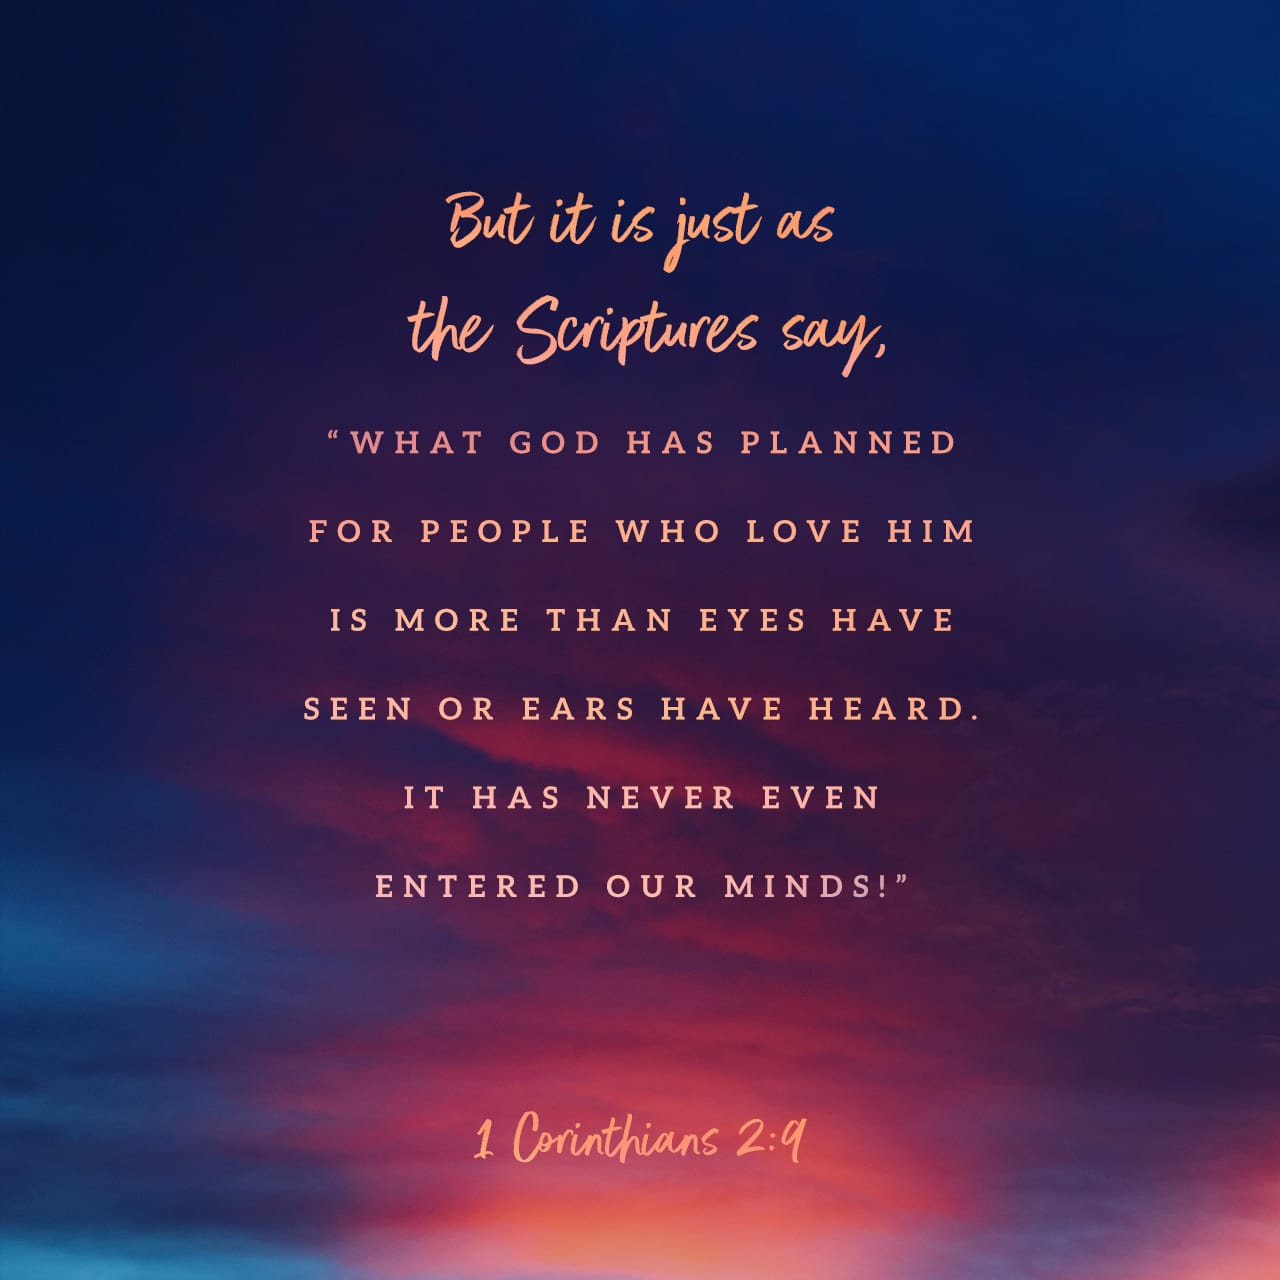 1 Corinthians 2:9 But as it is written, Eye hath not seen, nor ear heard, neither have entered into the heart of man, the things which God hath prepared for them that love him. | King James Version (KJV)